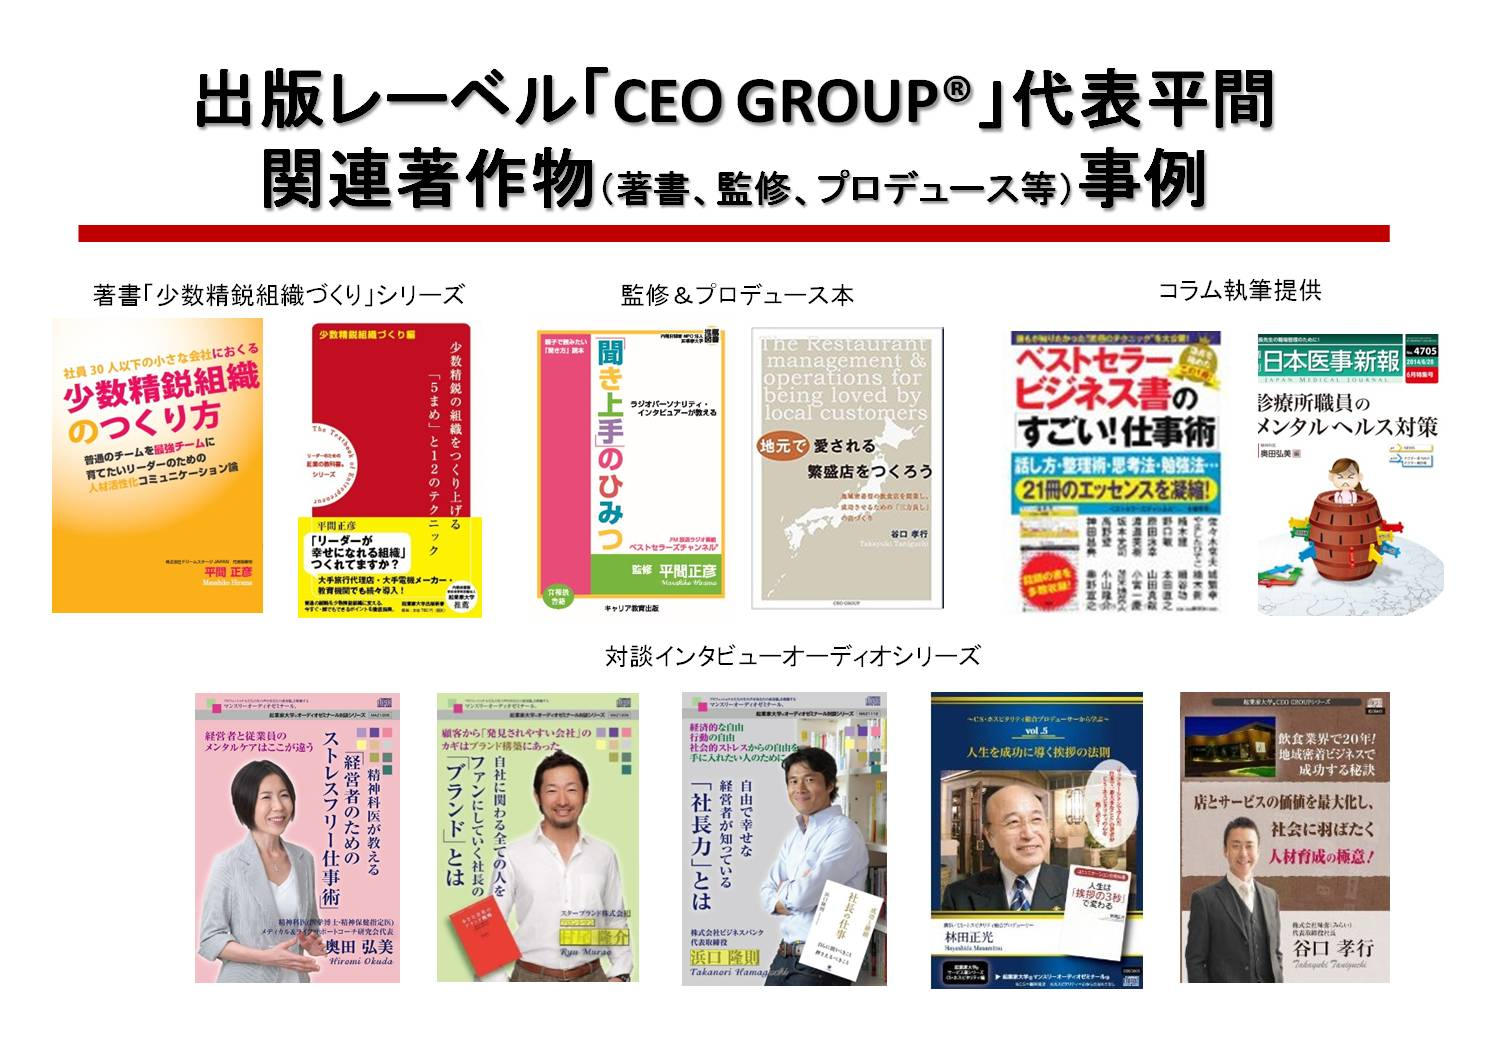 ceo group 関連著作物